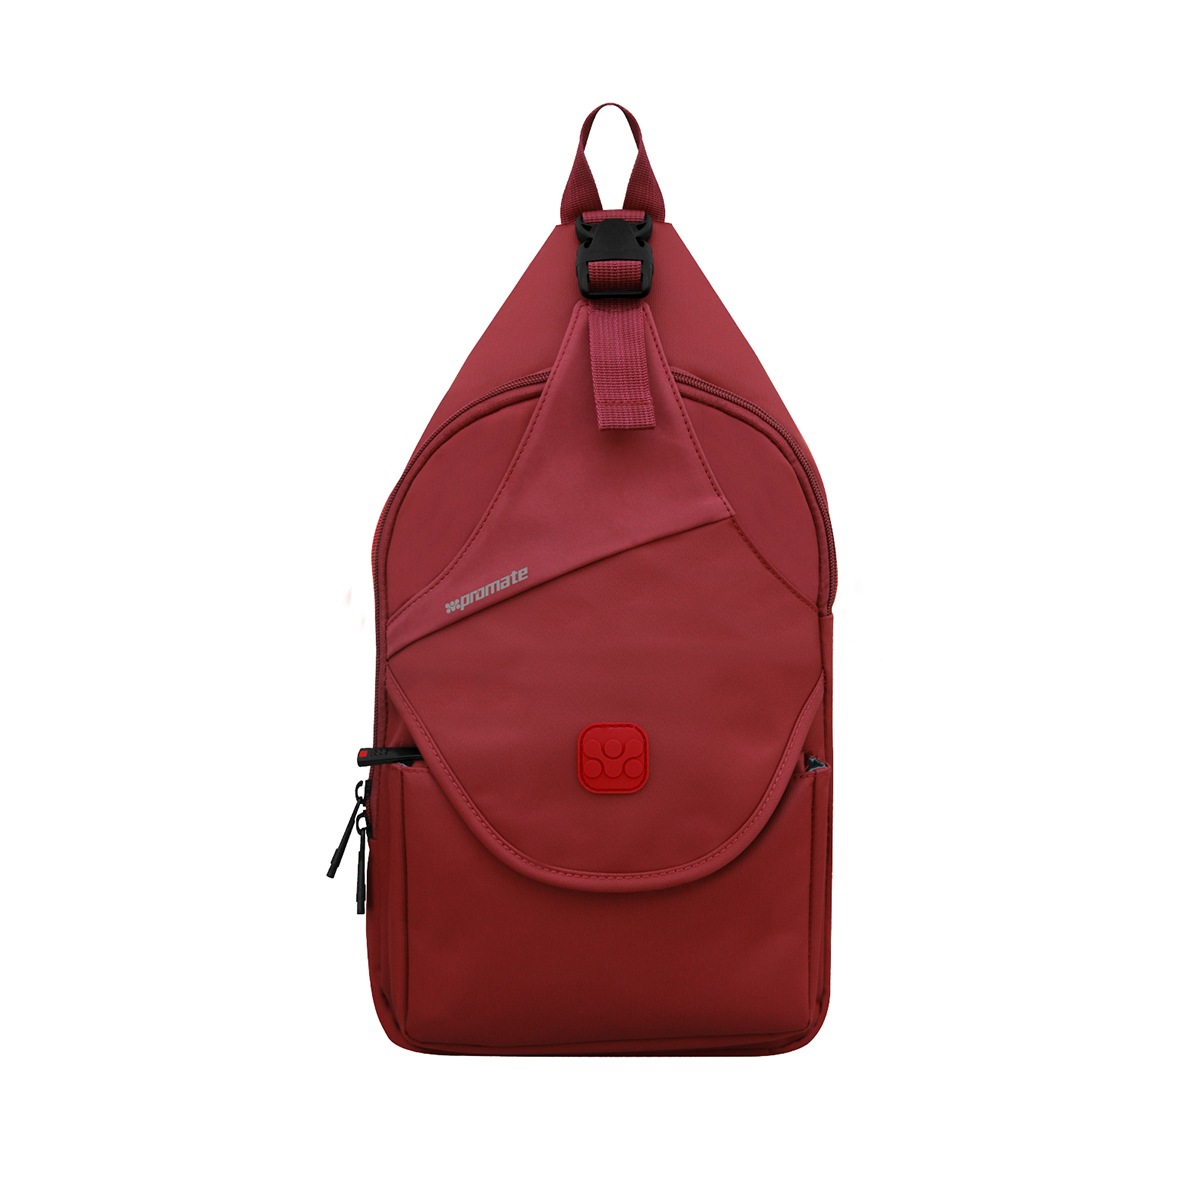 Promate Tablet Sling Bag For Tablets Up To 10.1 Inch, Promate TabSling-Red